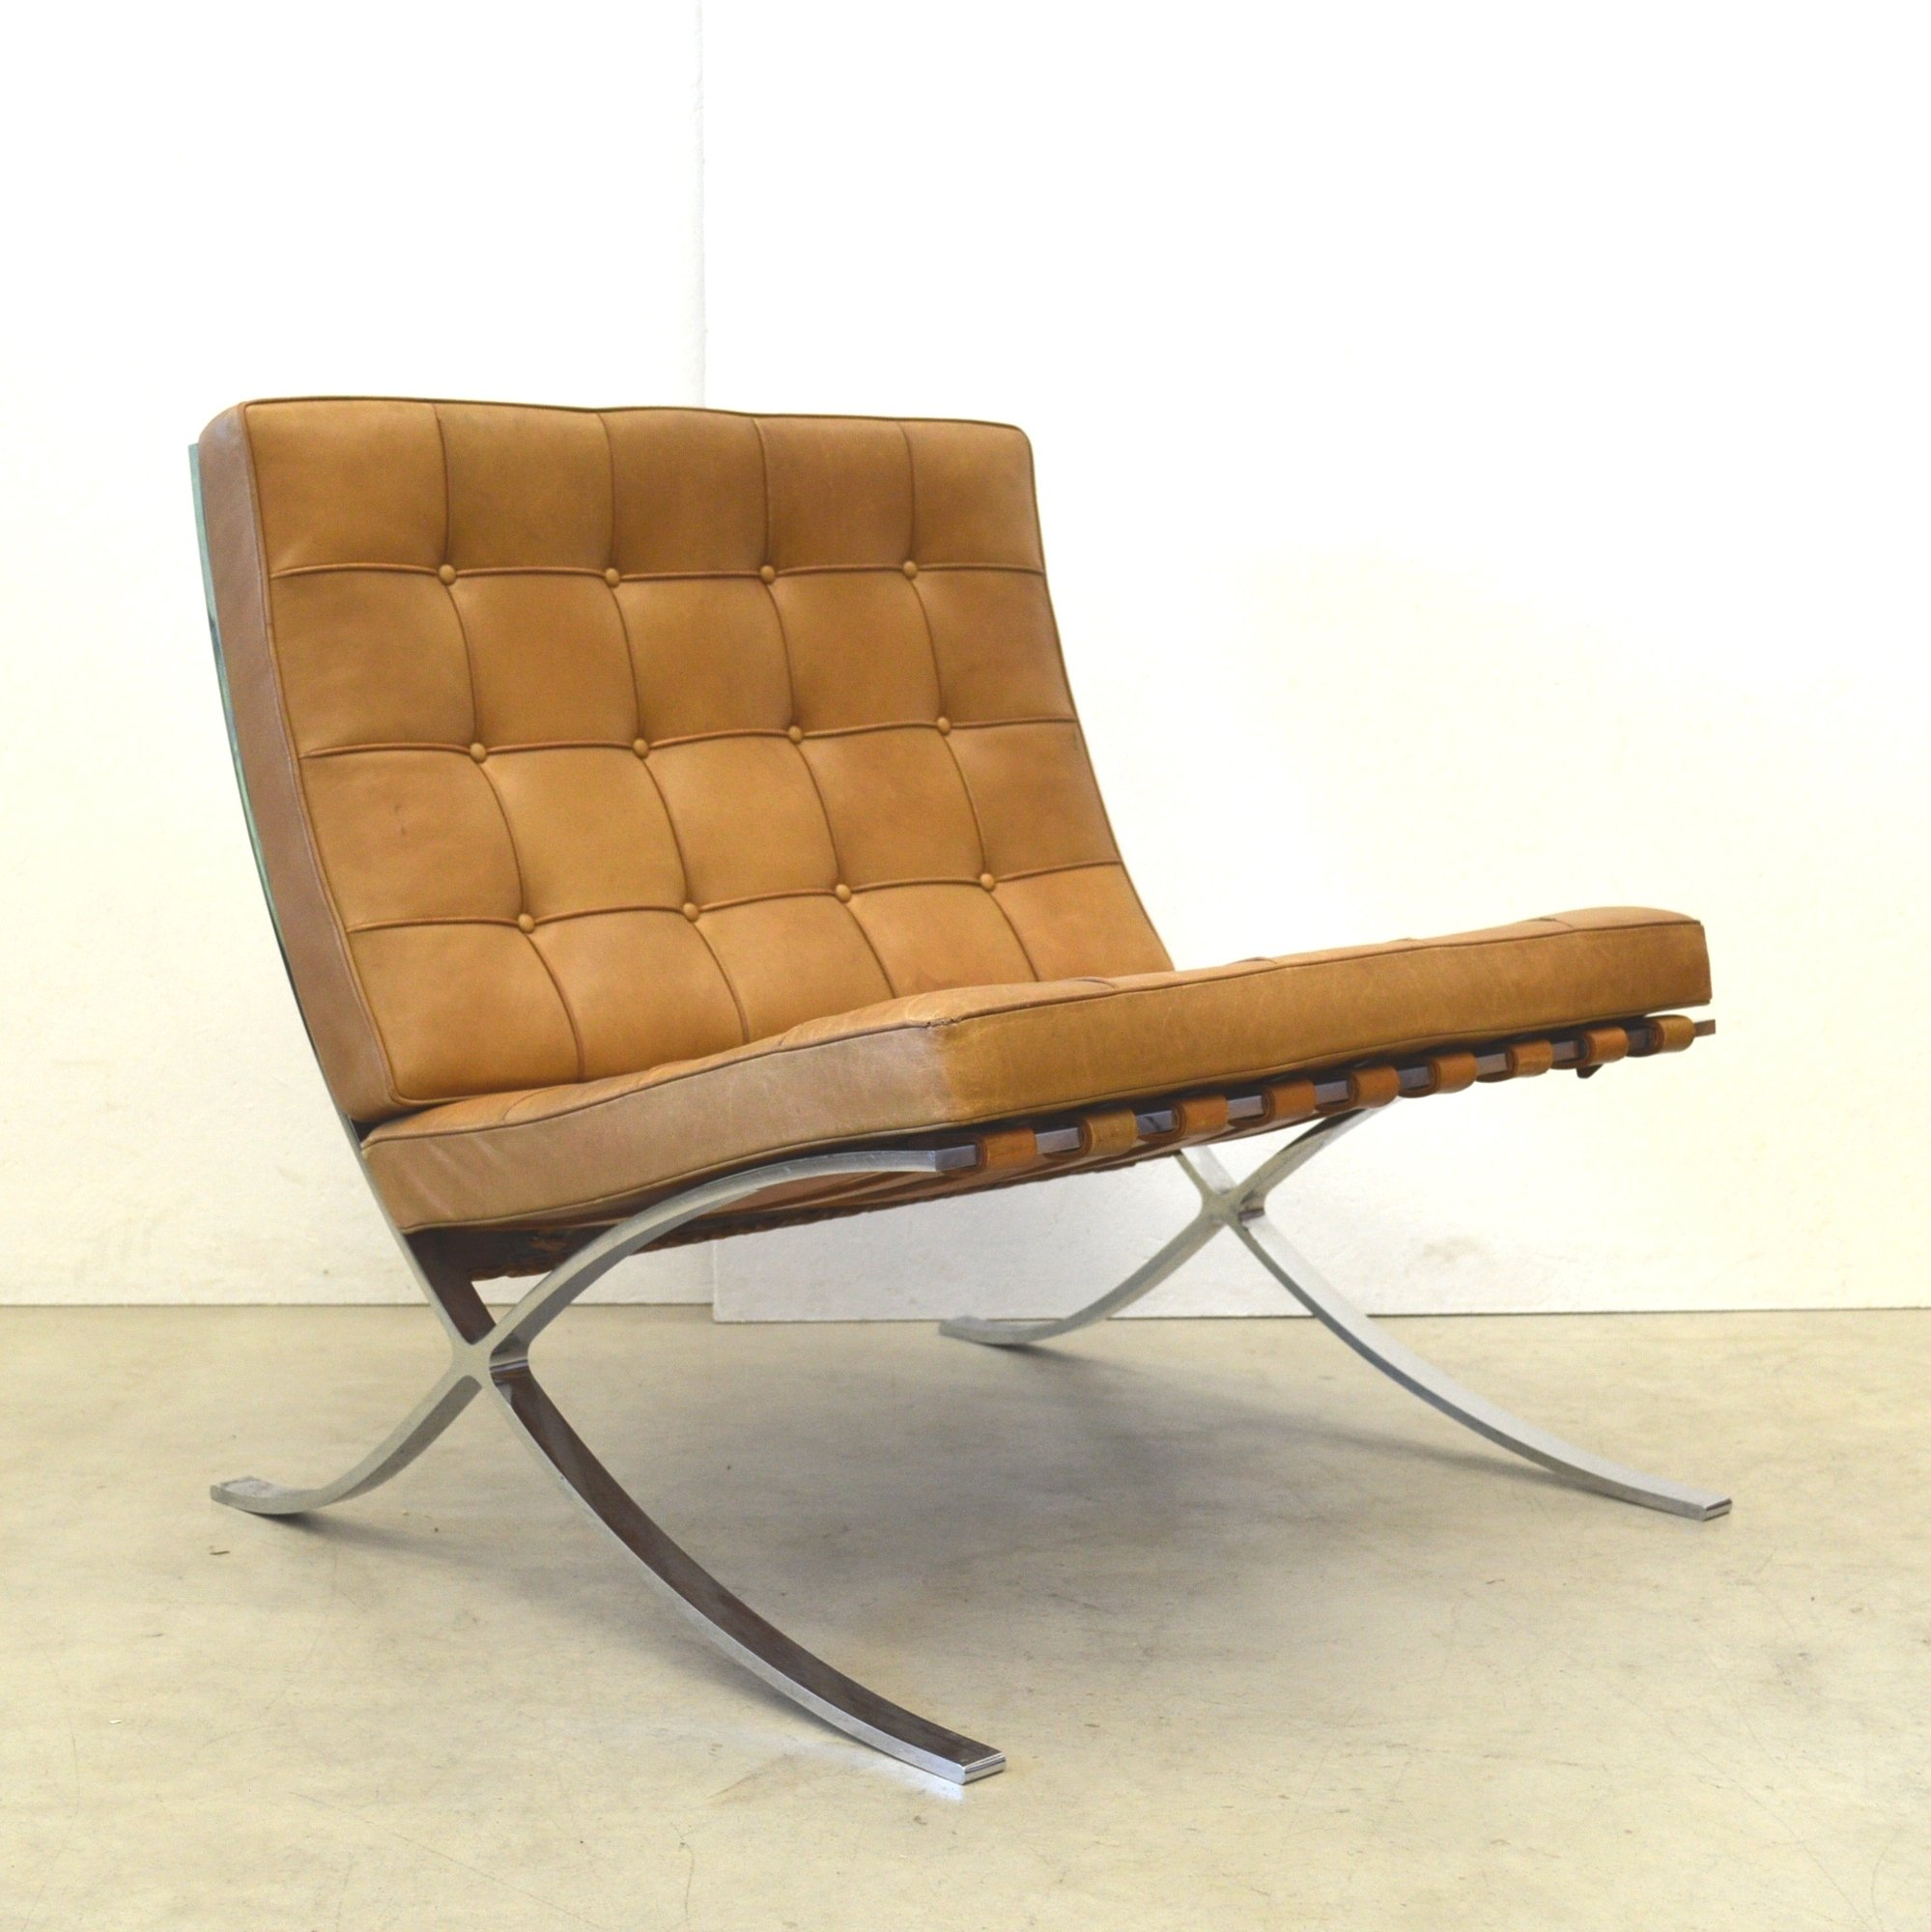 barcelona lounge chair from the sixties by ludwig mies van. Black Bedroom Furniture Sets. Home Design Ideas